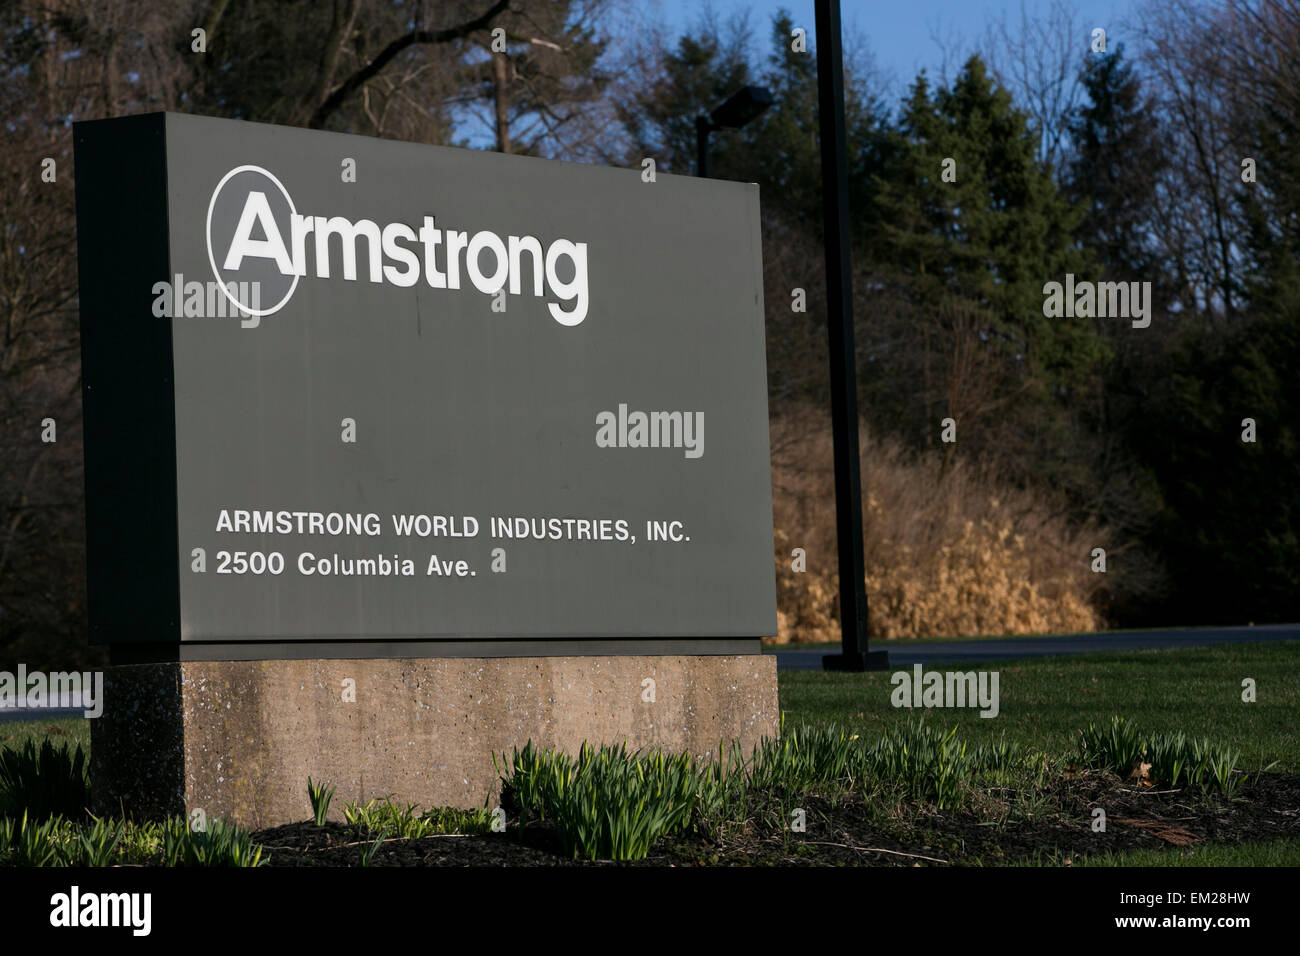 A logo sign outside the headquarters of Armstrong World Industries, Inc., in Lancaster, Pennsylvania. - Stock Image